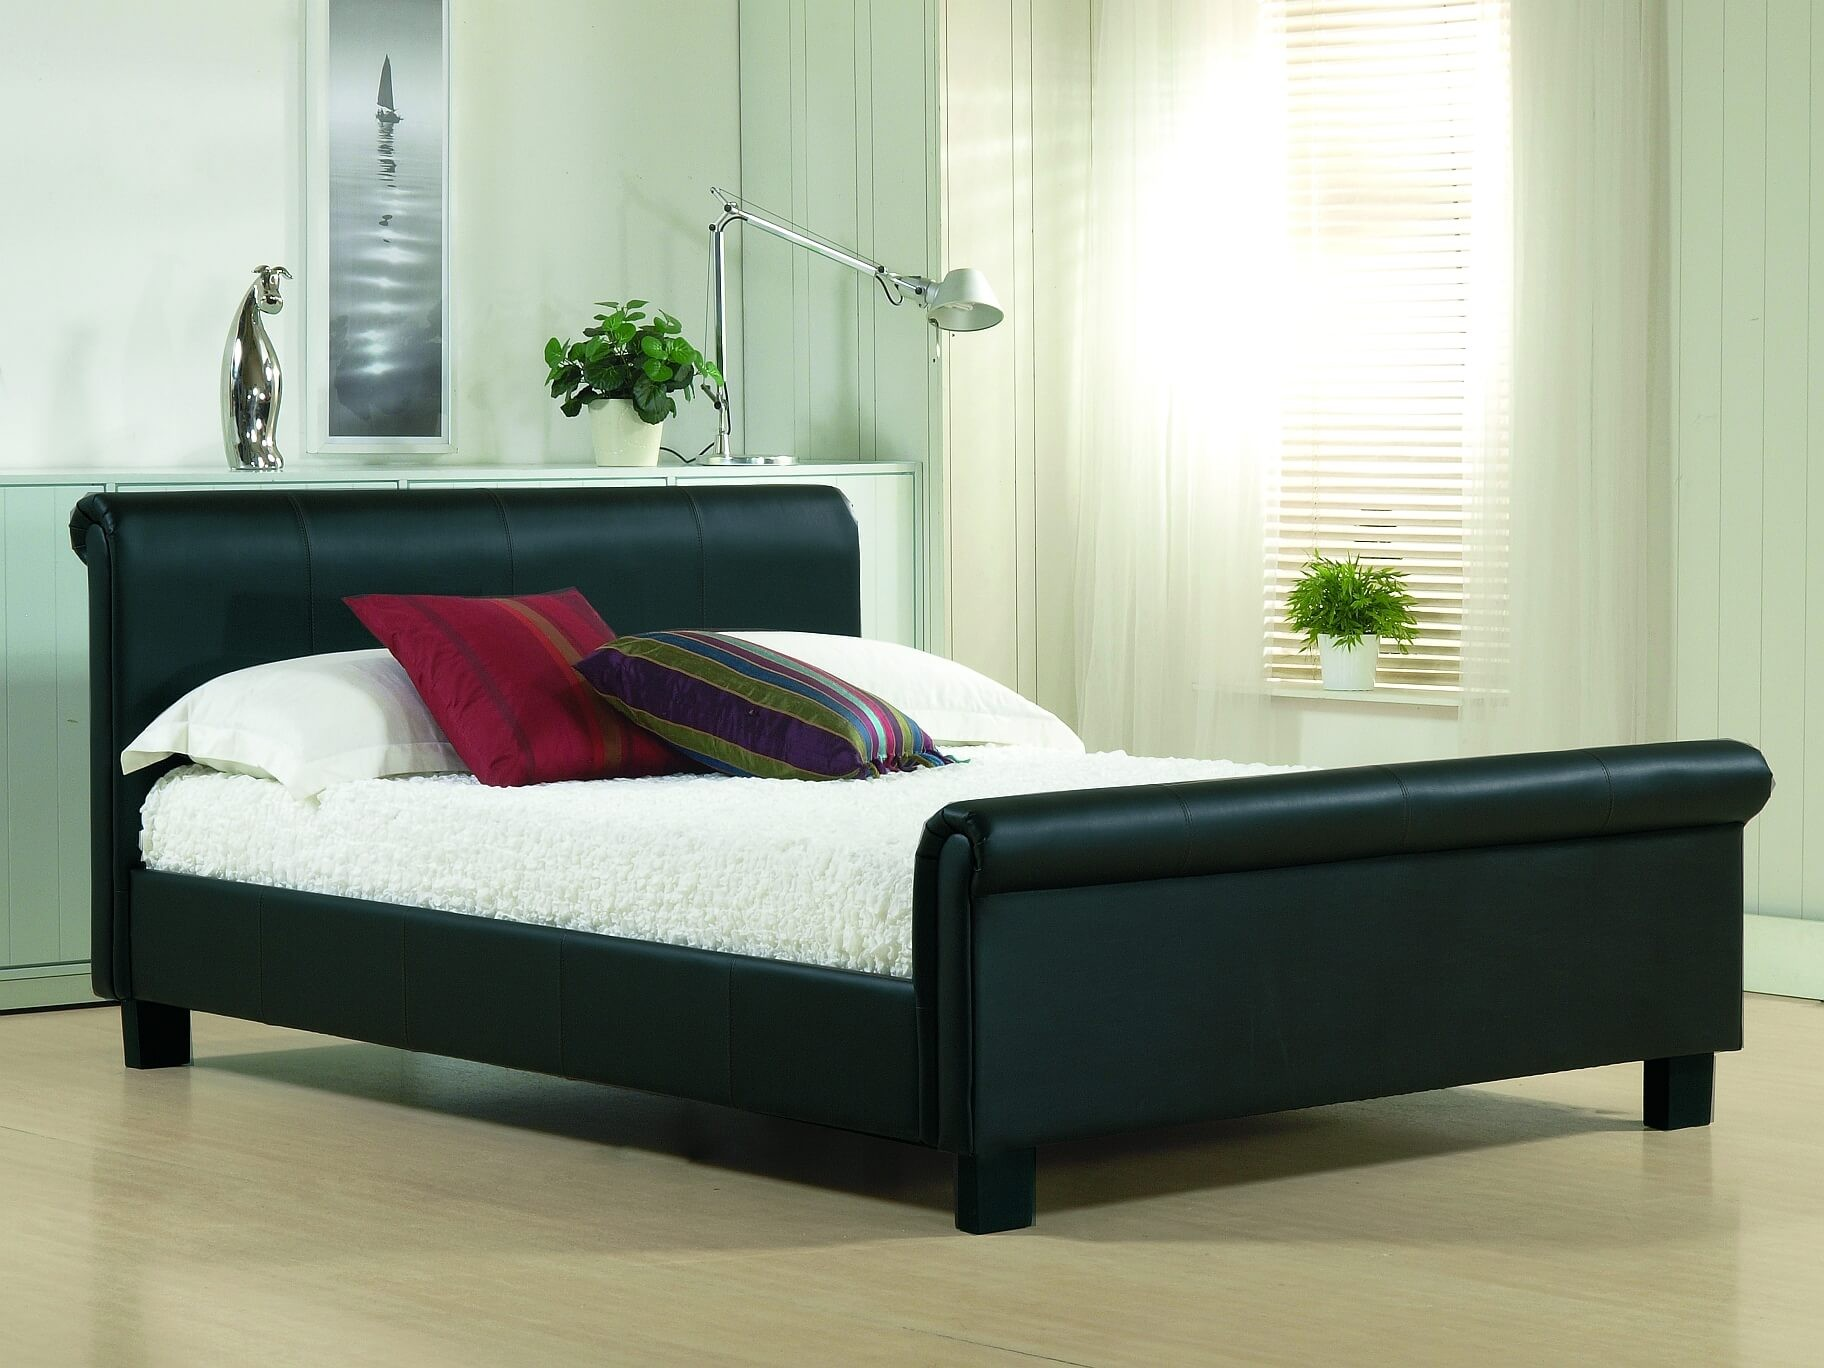 https://www.firstfurniture.co.uk/pub/media/catalog/product/a/u/aurora_black_8.jpg